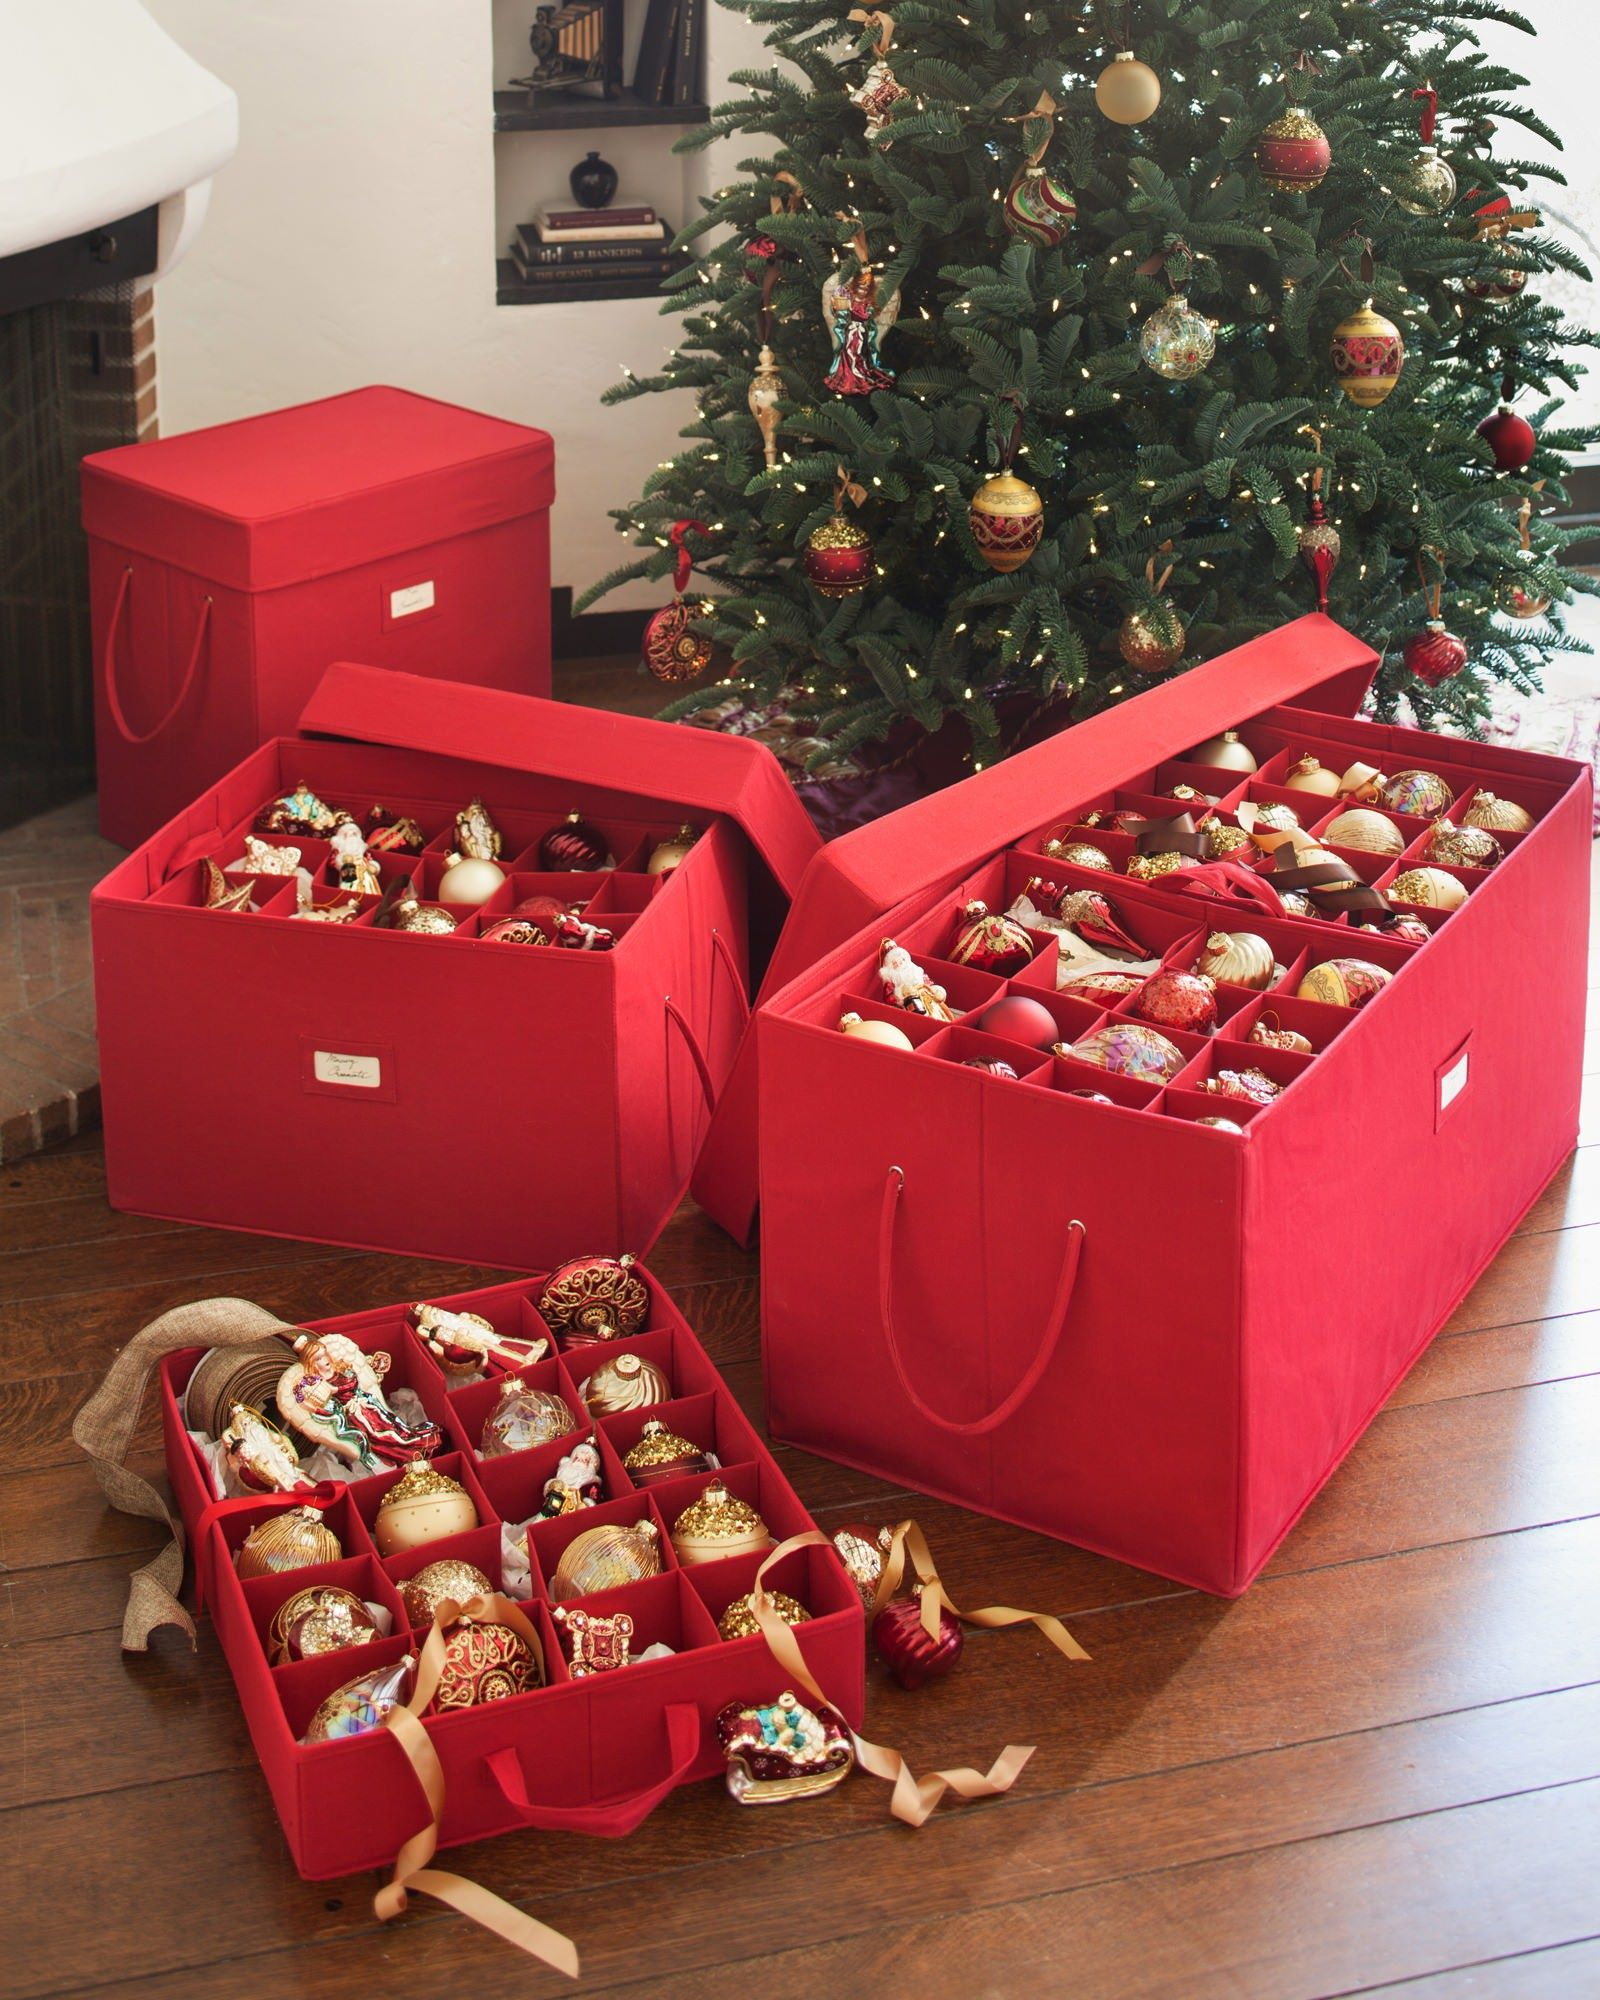 Use This Weekend To Organize And Put Away Your Holiday Decor With These  Simple Tips!